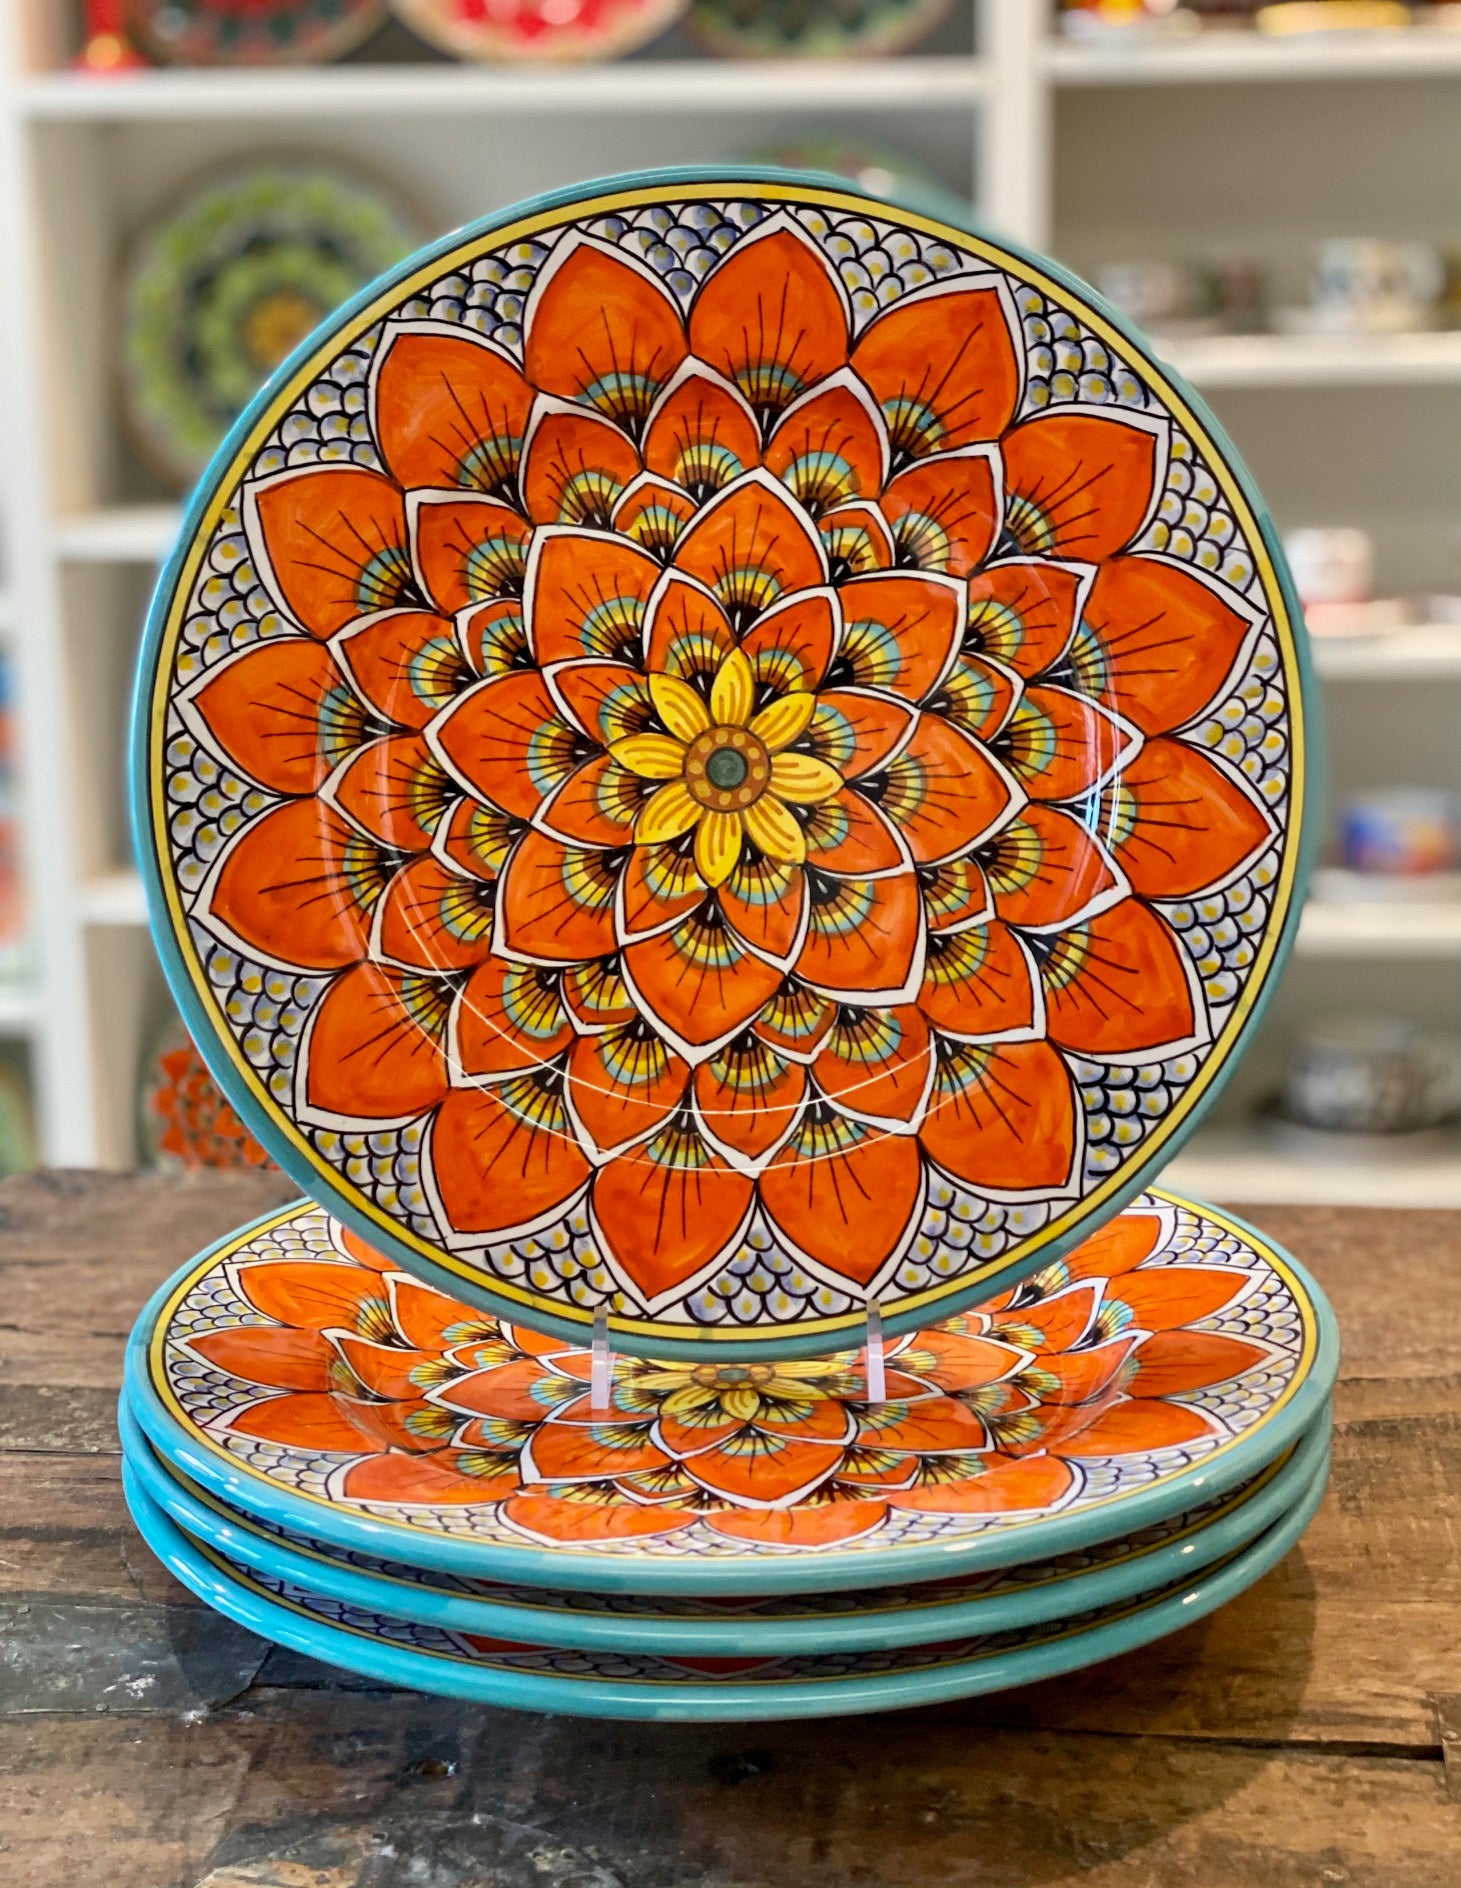 Geribi Dinnerware Plates (PG11) Burnt Orange Peacock Design - Set of 4